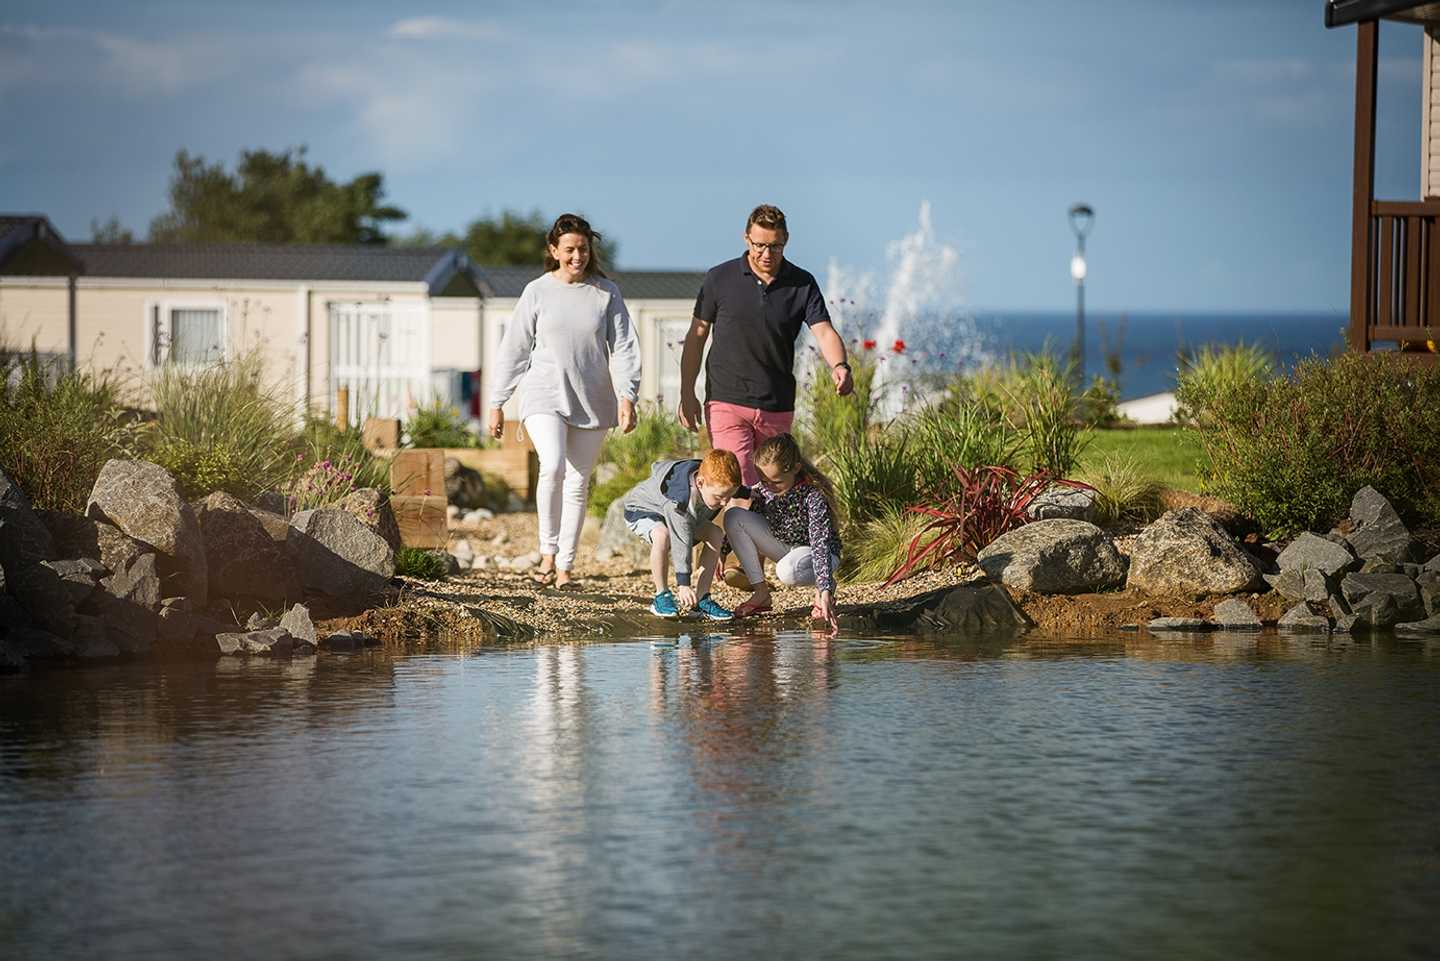 A family dipping their hands in one of the lakes at Primrose Valley, there's caravans and a fountain in the background